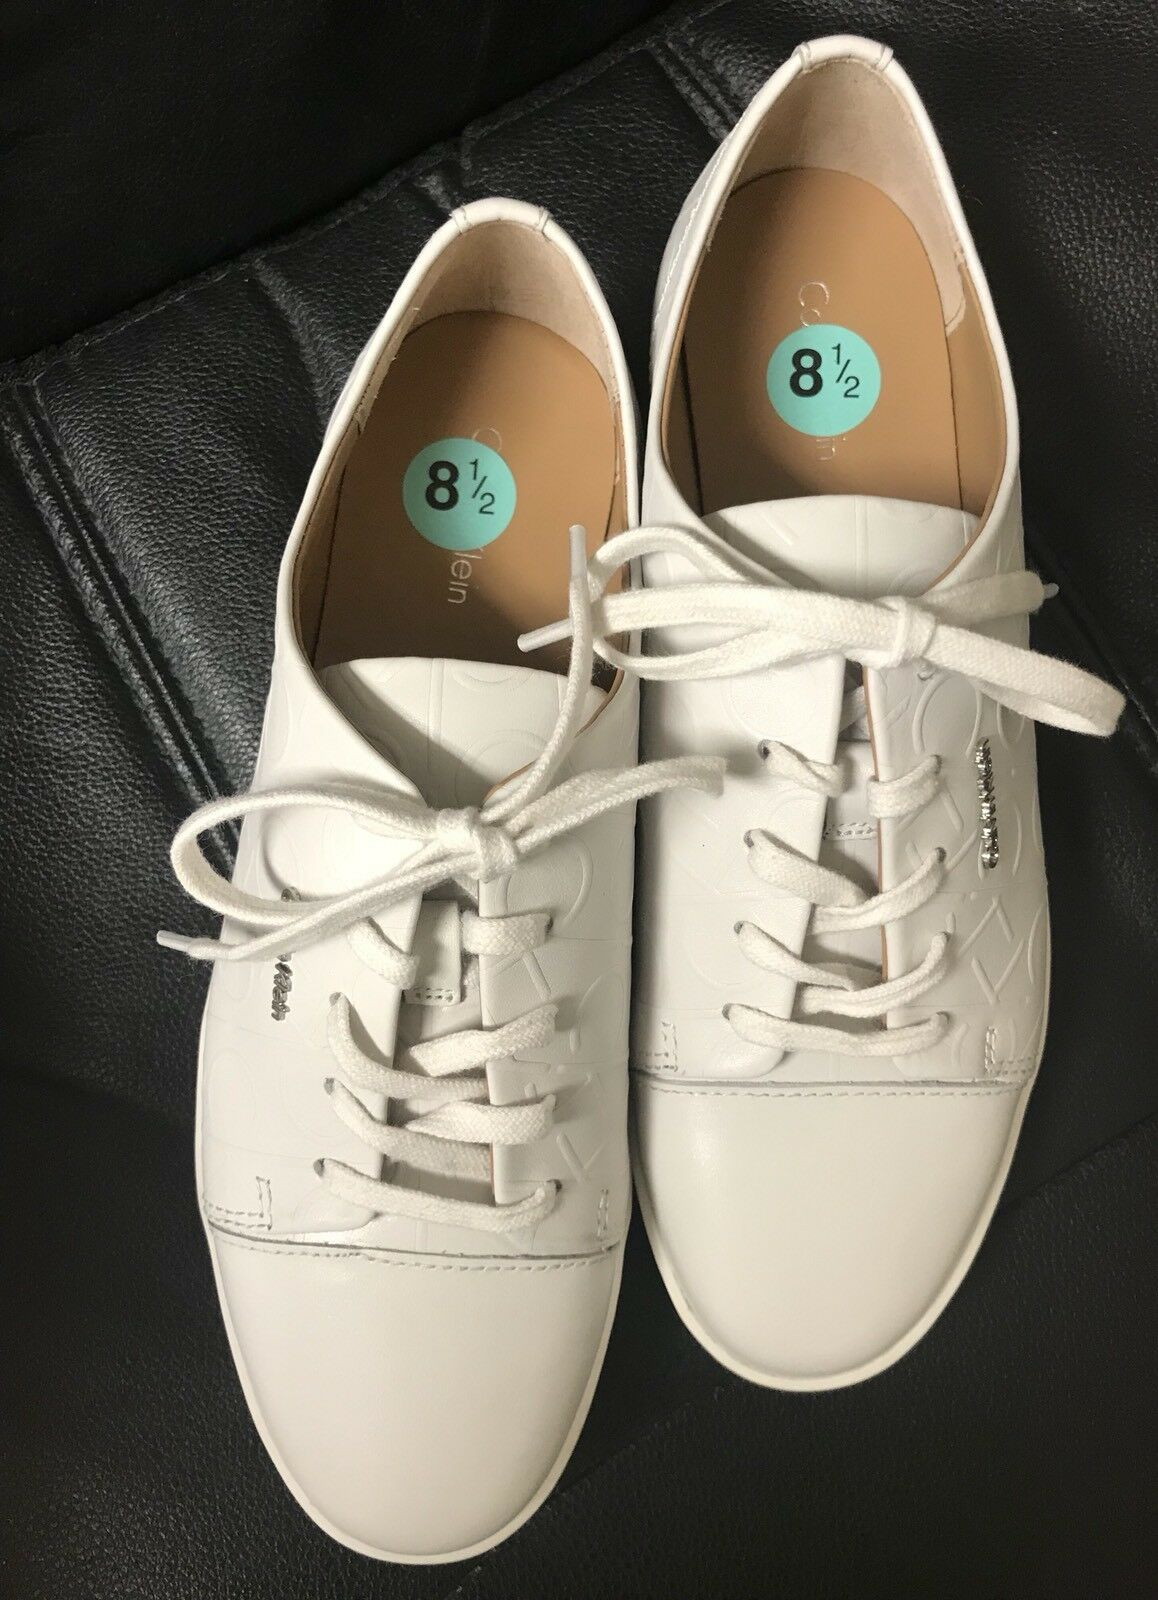 Calvin Klein Women's White Leather Lace Up Fashion Shoes Sneakers Size 8.5 New